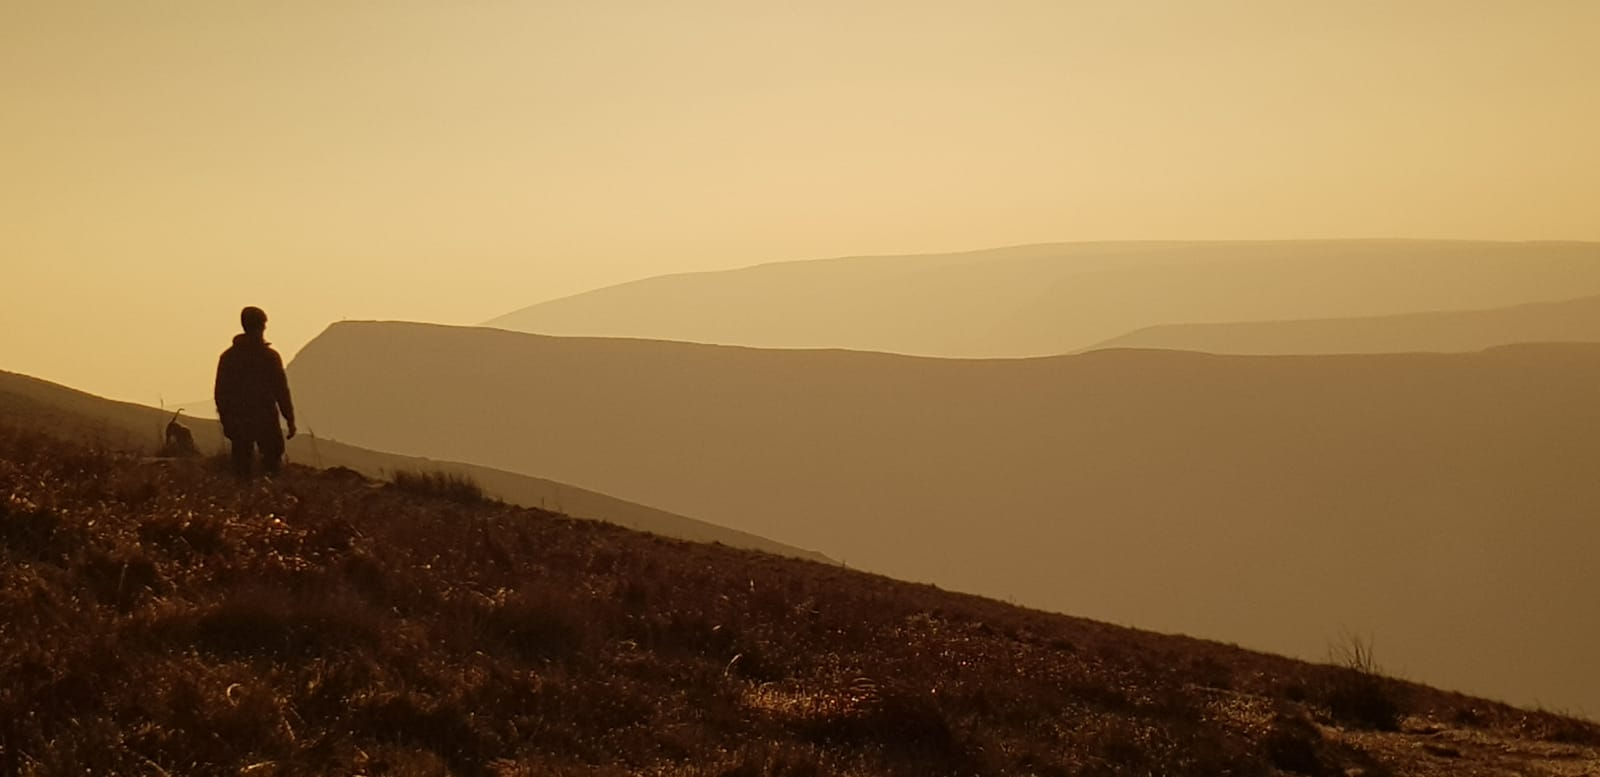 Rhys in his happy place, the Brecon Beacons on dawn patrol with 'Jax'.